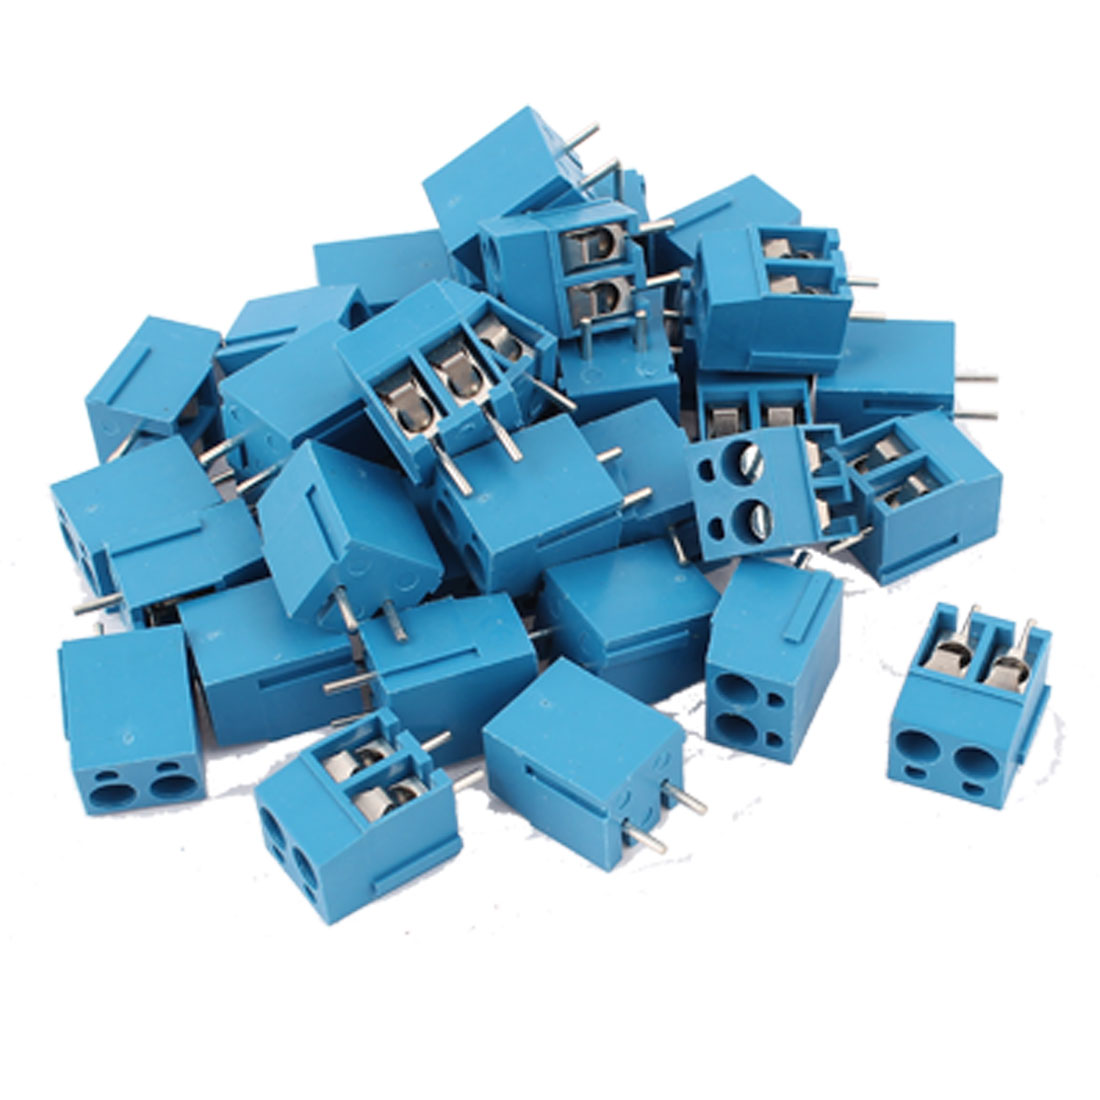 36 Pcs 2Pole PCB Screw Terminal Block Wire Connector 5.08mm Pitch Blue